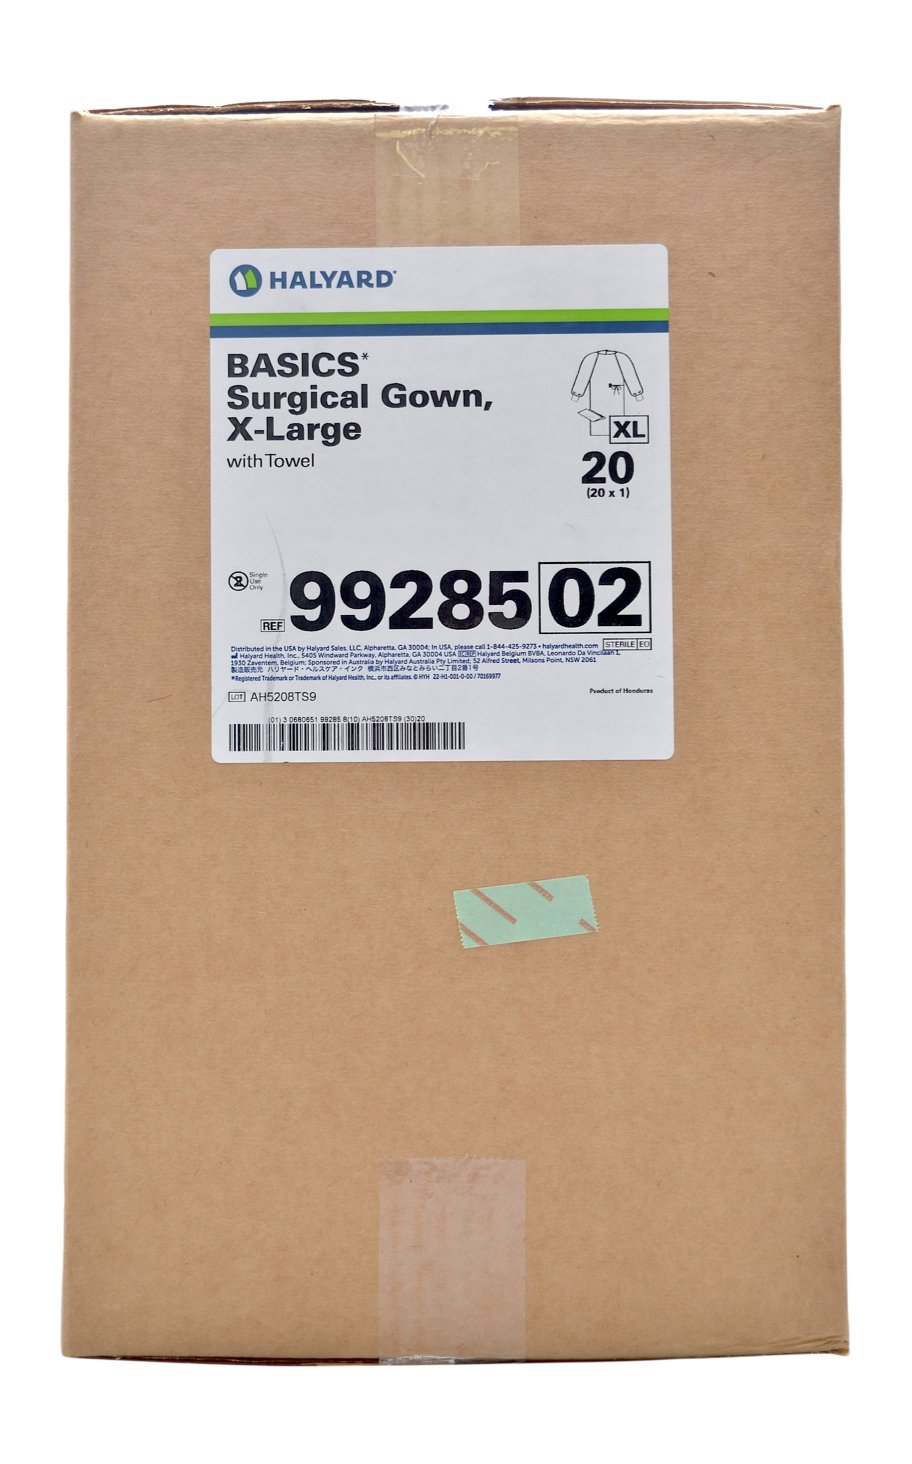 Halyard Health 99285 Basics Non-Reinforced Surgical Gown, X-Large, Sterile, Regular (Case of 20) by Halyard Health (Image #3)